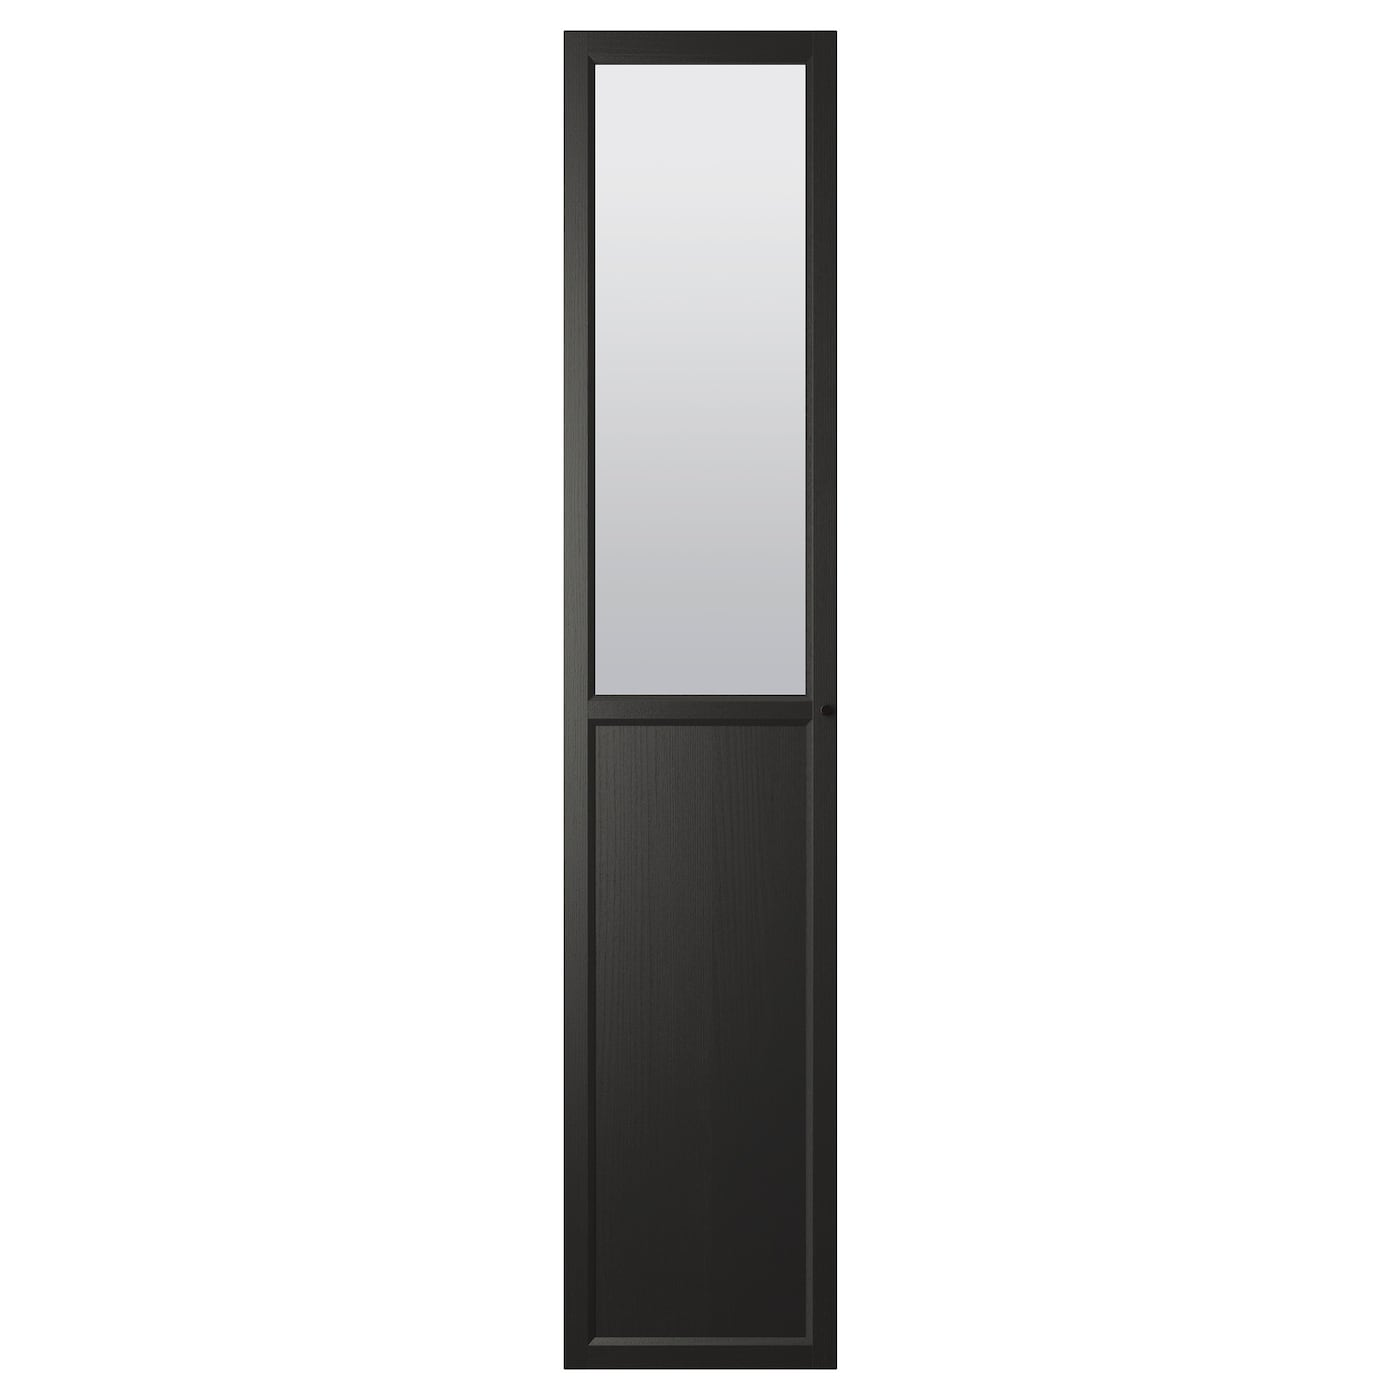 IKEA OXBERG panel/glass door